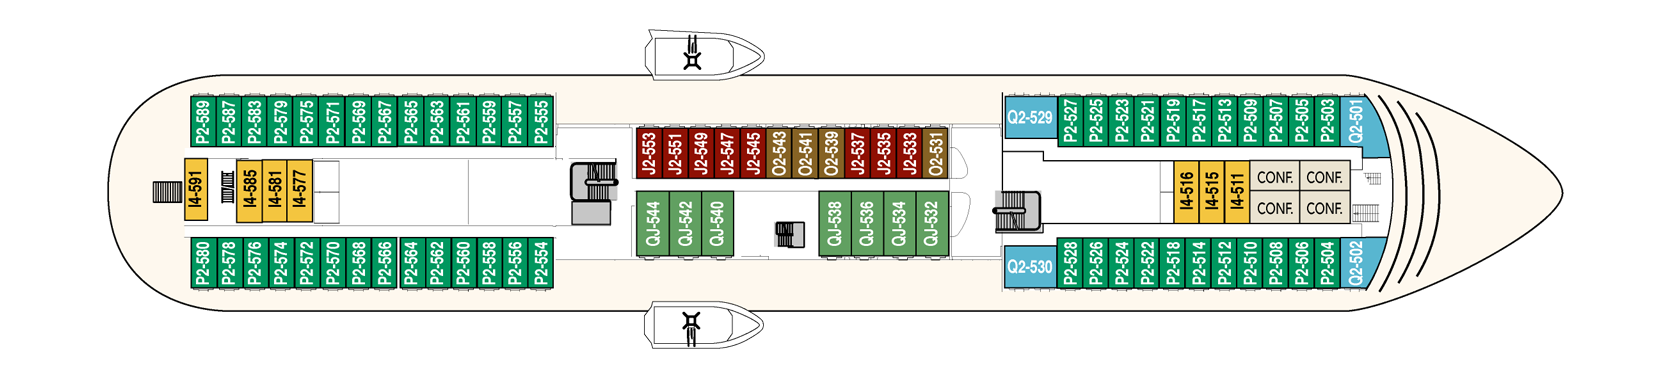 Hurtigruten MS Finnmarken Deck Plans Deck 5.png